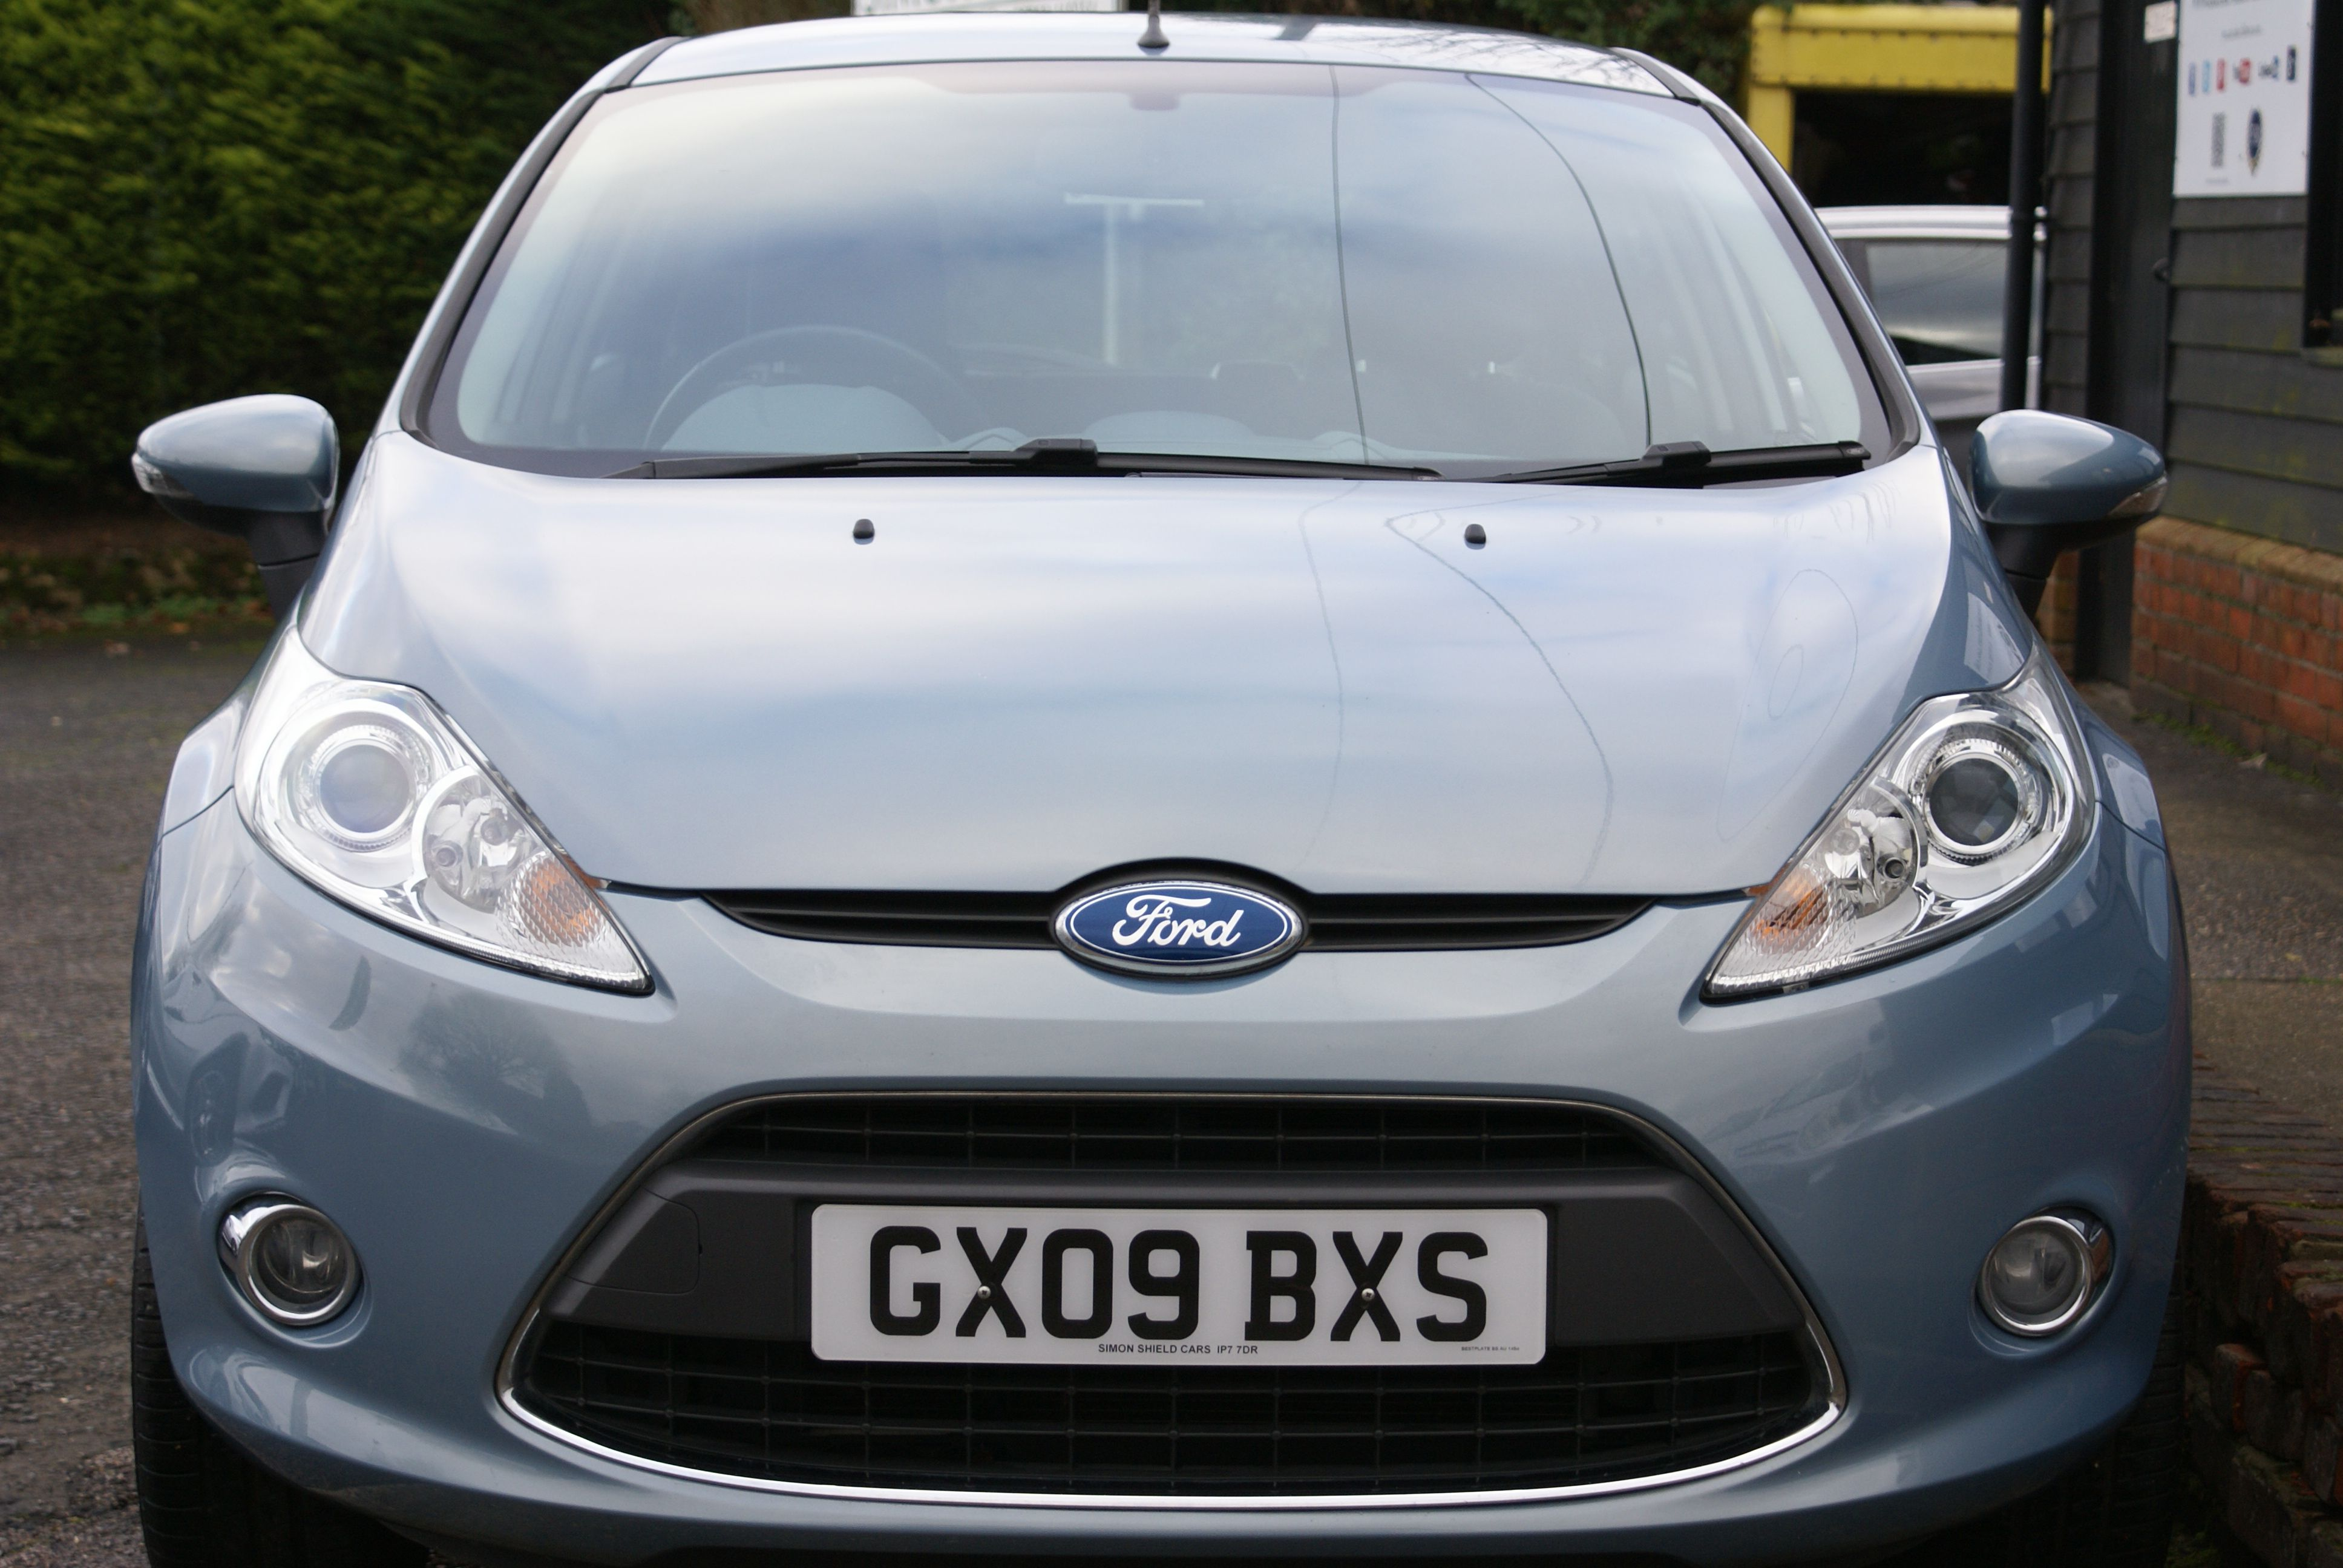 What A Gem This Zippy Ford Fiesta Zooms Around The Back Roads And Is A Comfortable Drive On Motorways Too Full Service Hi Used Cars Cars For Sale Ford Fiesta